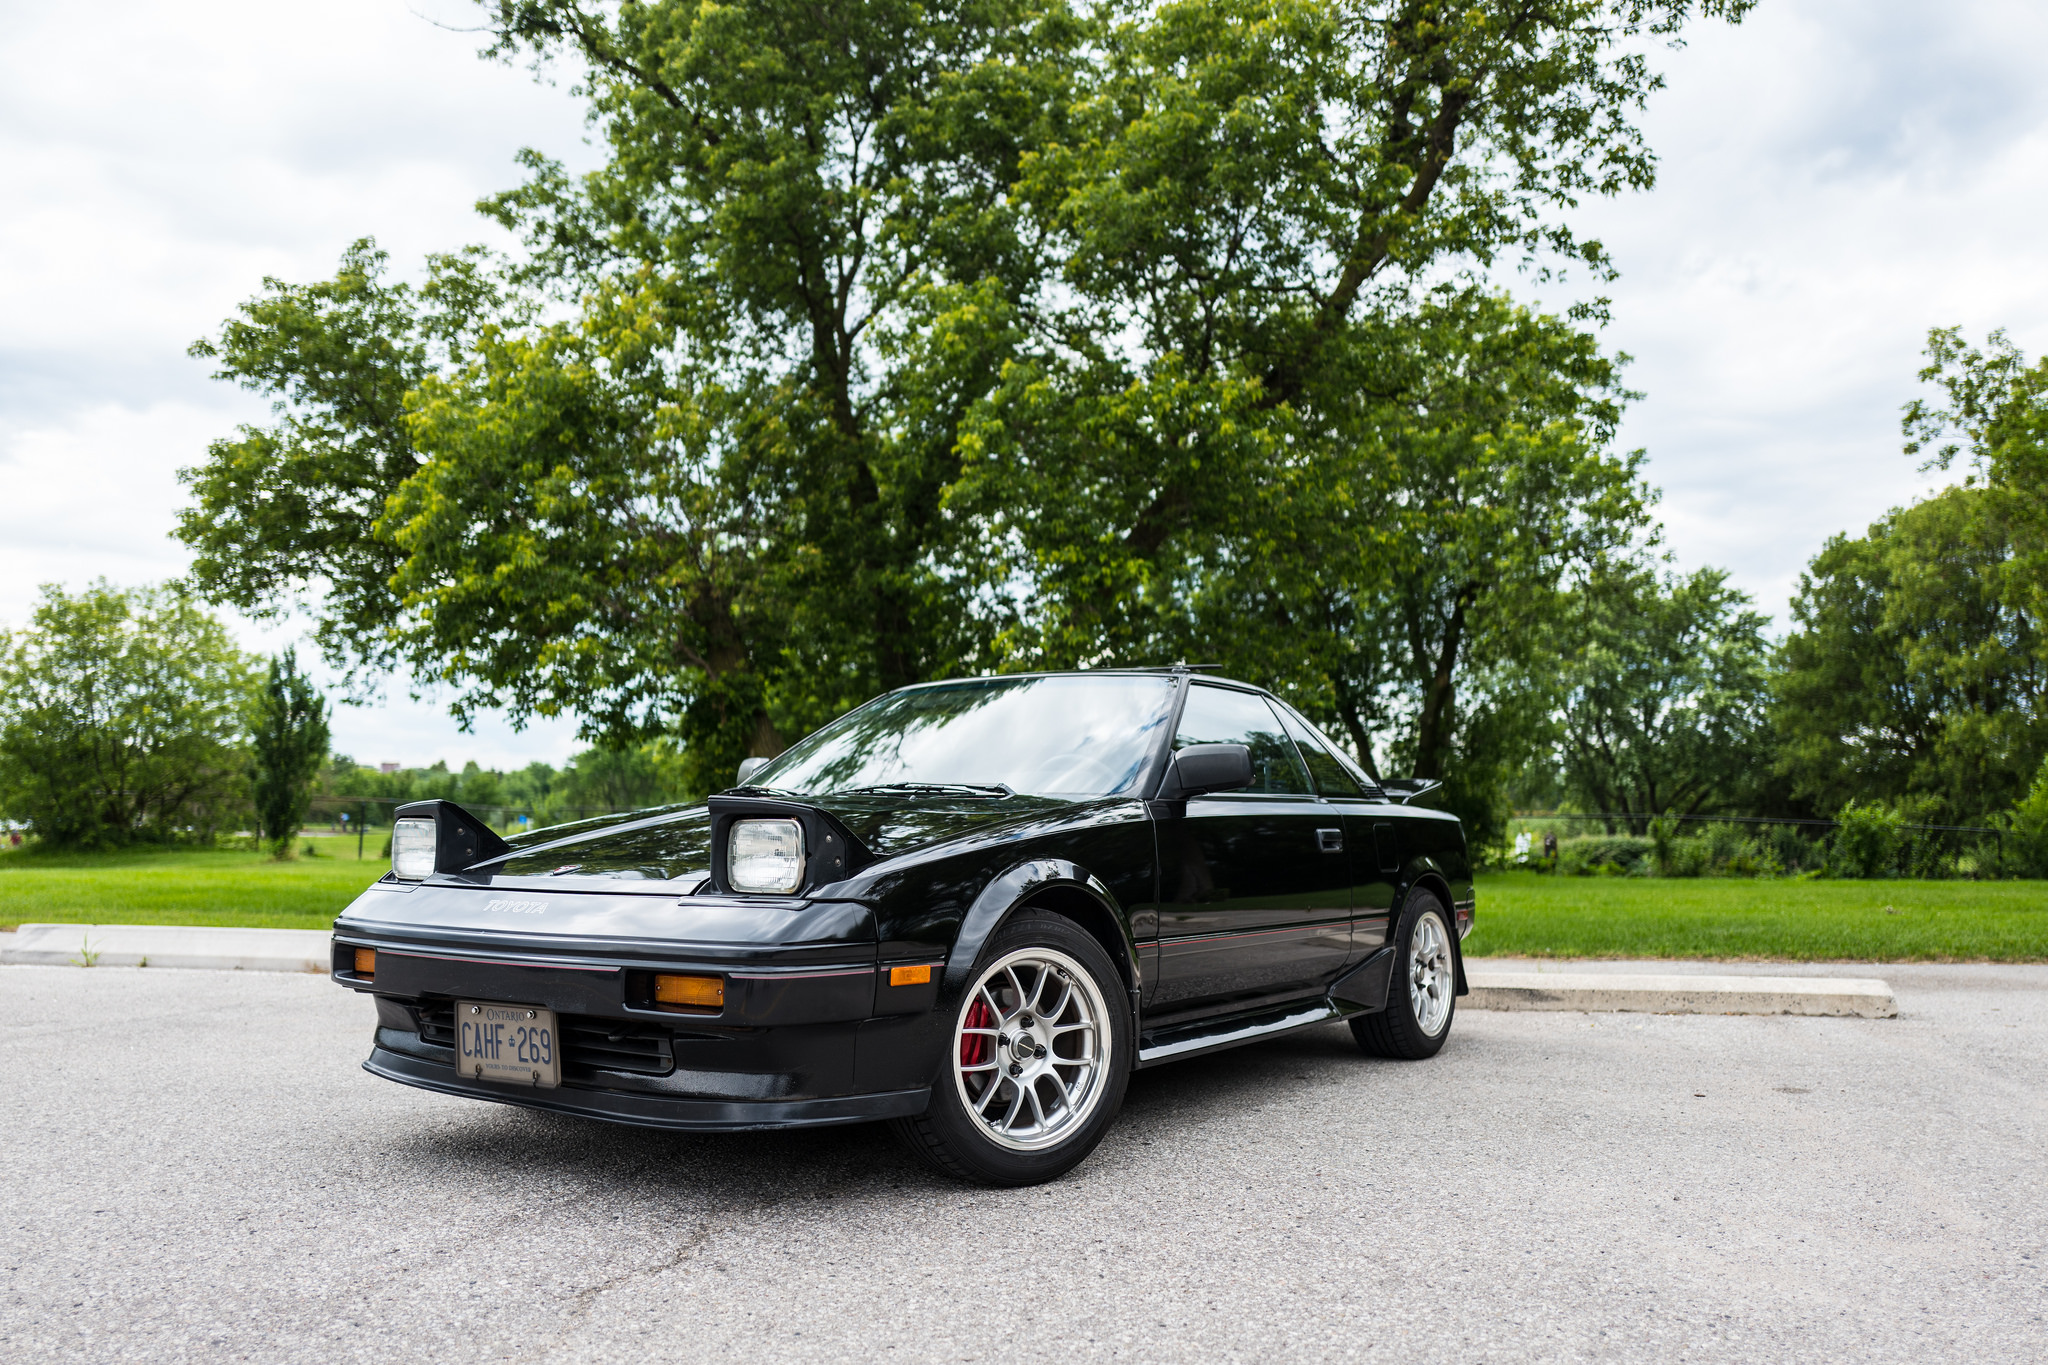 The AW11 Toyota MR2 Is Not a Hardcore Sports Car, And That's Okay